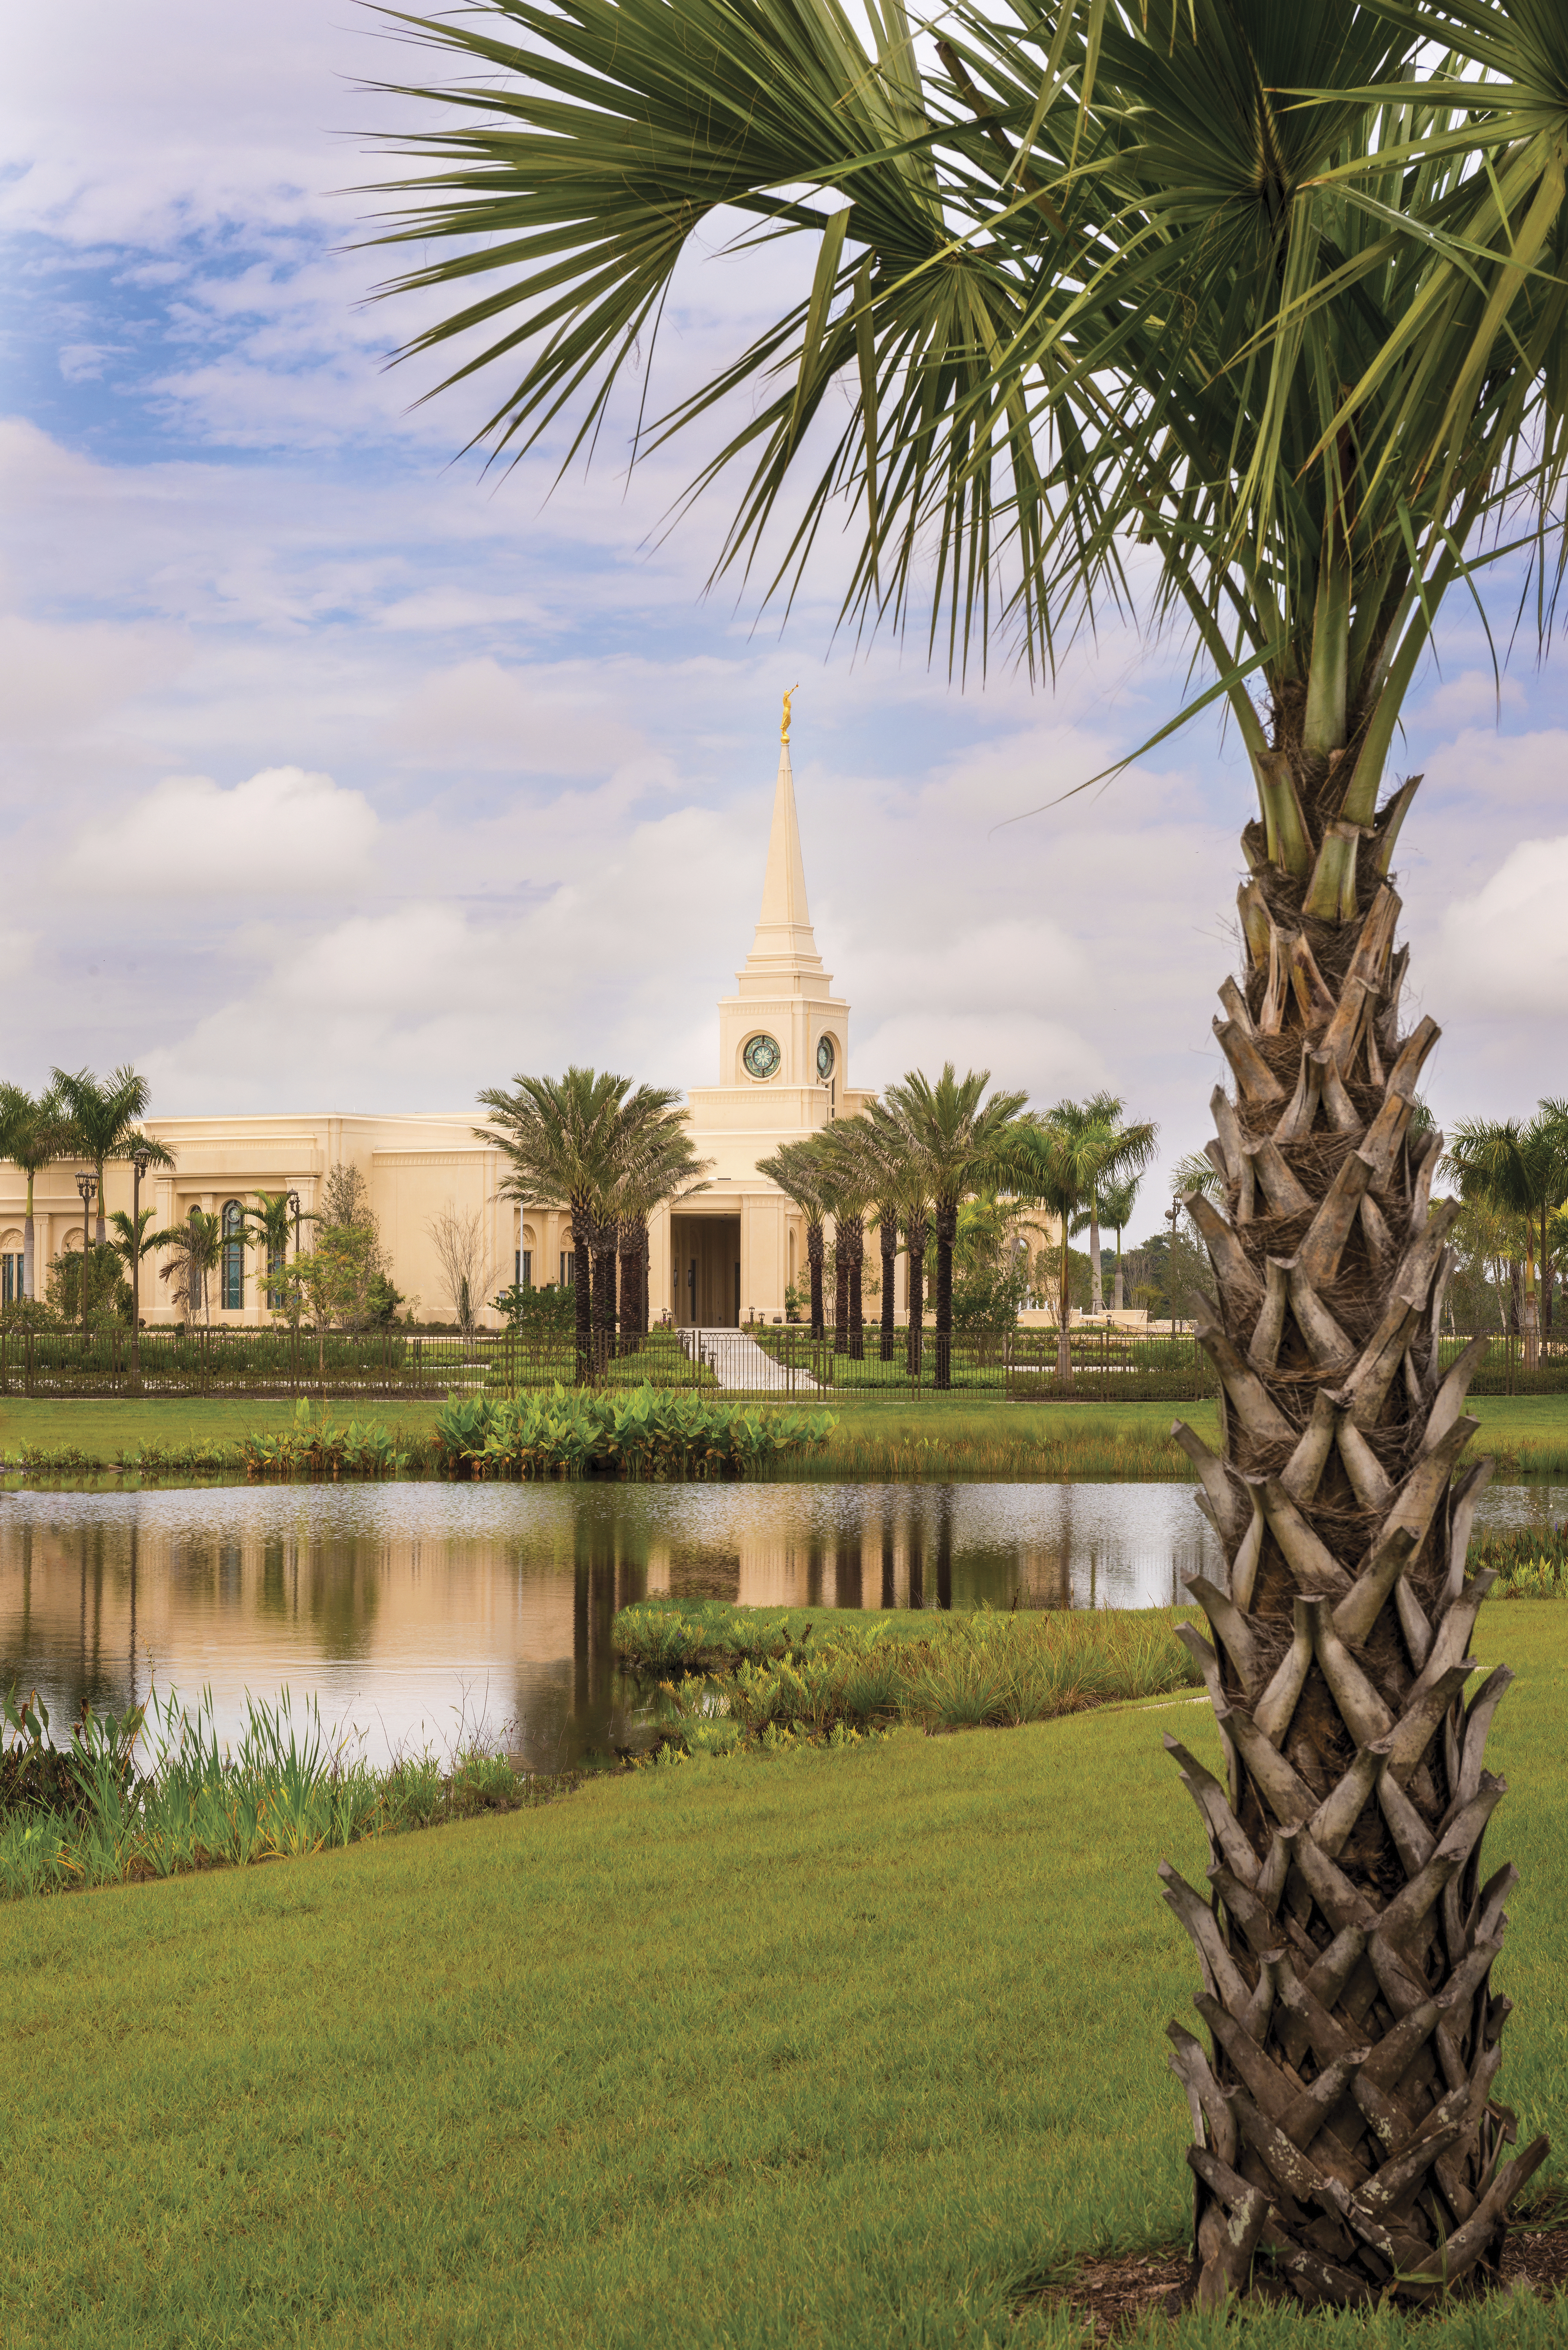 A portrait view of the Fort Lauderdale Florida Temple from the temple grounds.